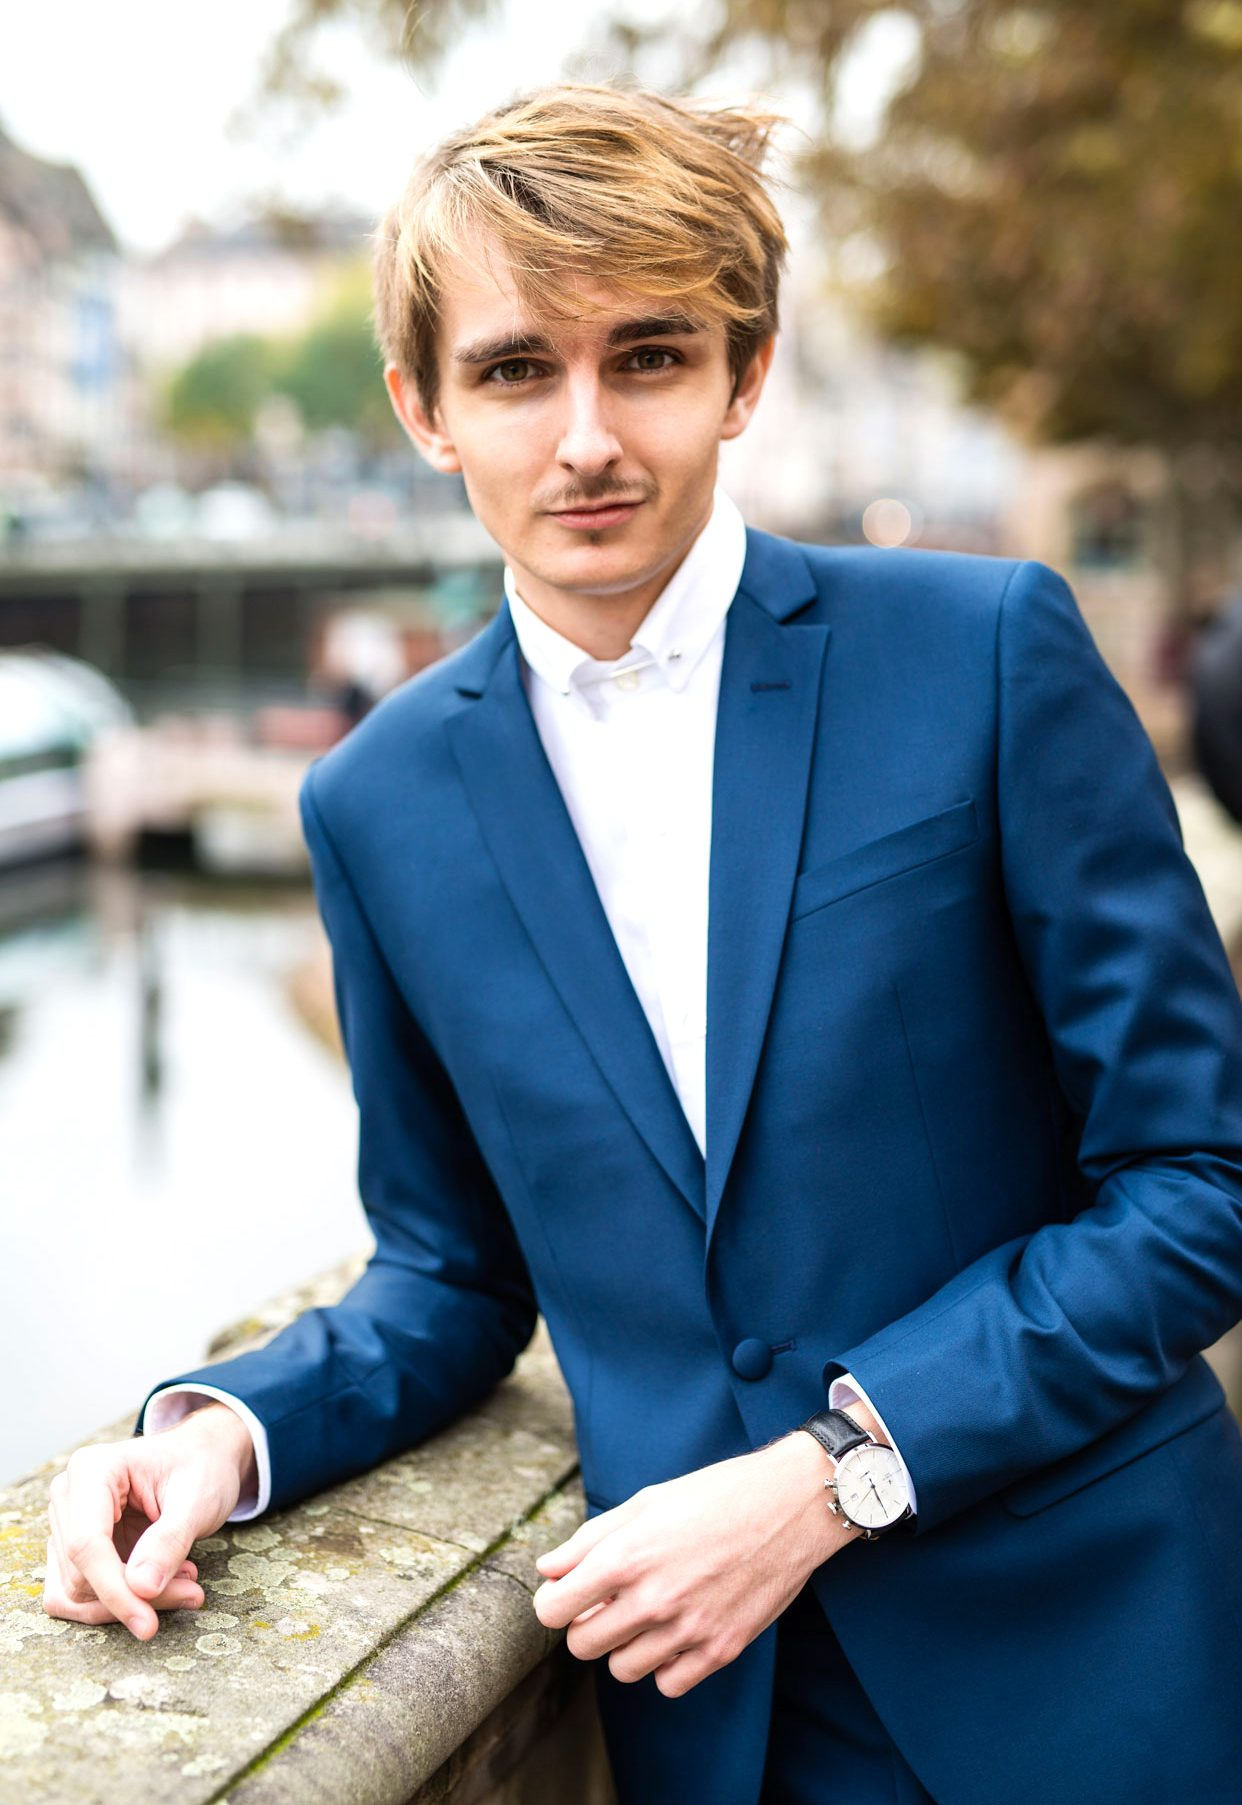 blog-mode-strasbourg-homme-lifestyle-costume-sneakers-baskets-suit-style-tendances-fashion-blogger-french-faubourg-saint-sulpice-paris-blog-12